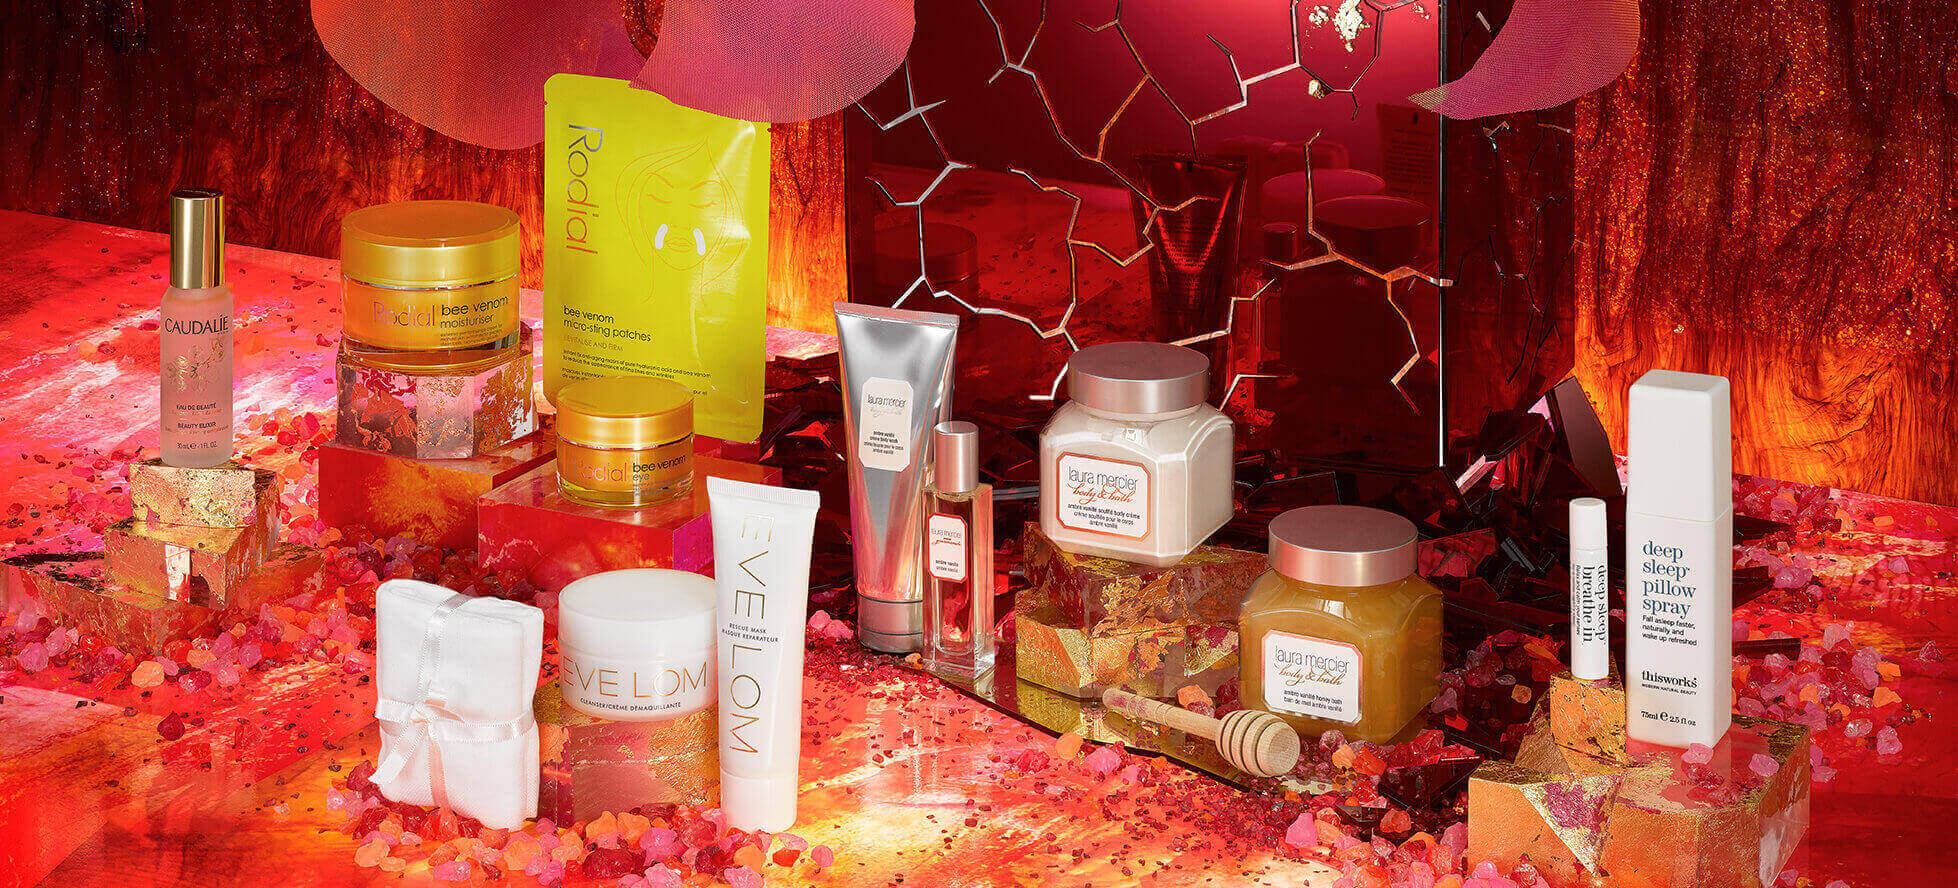 Celebrate Christmas at Space NK